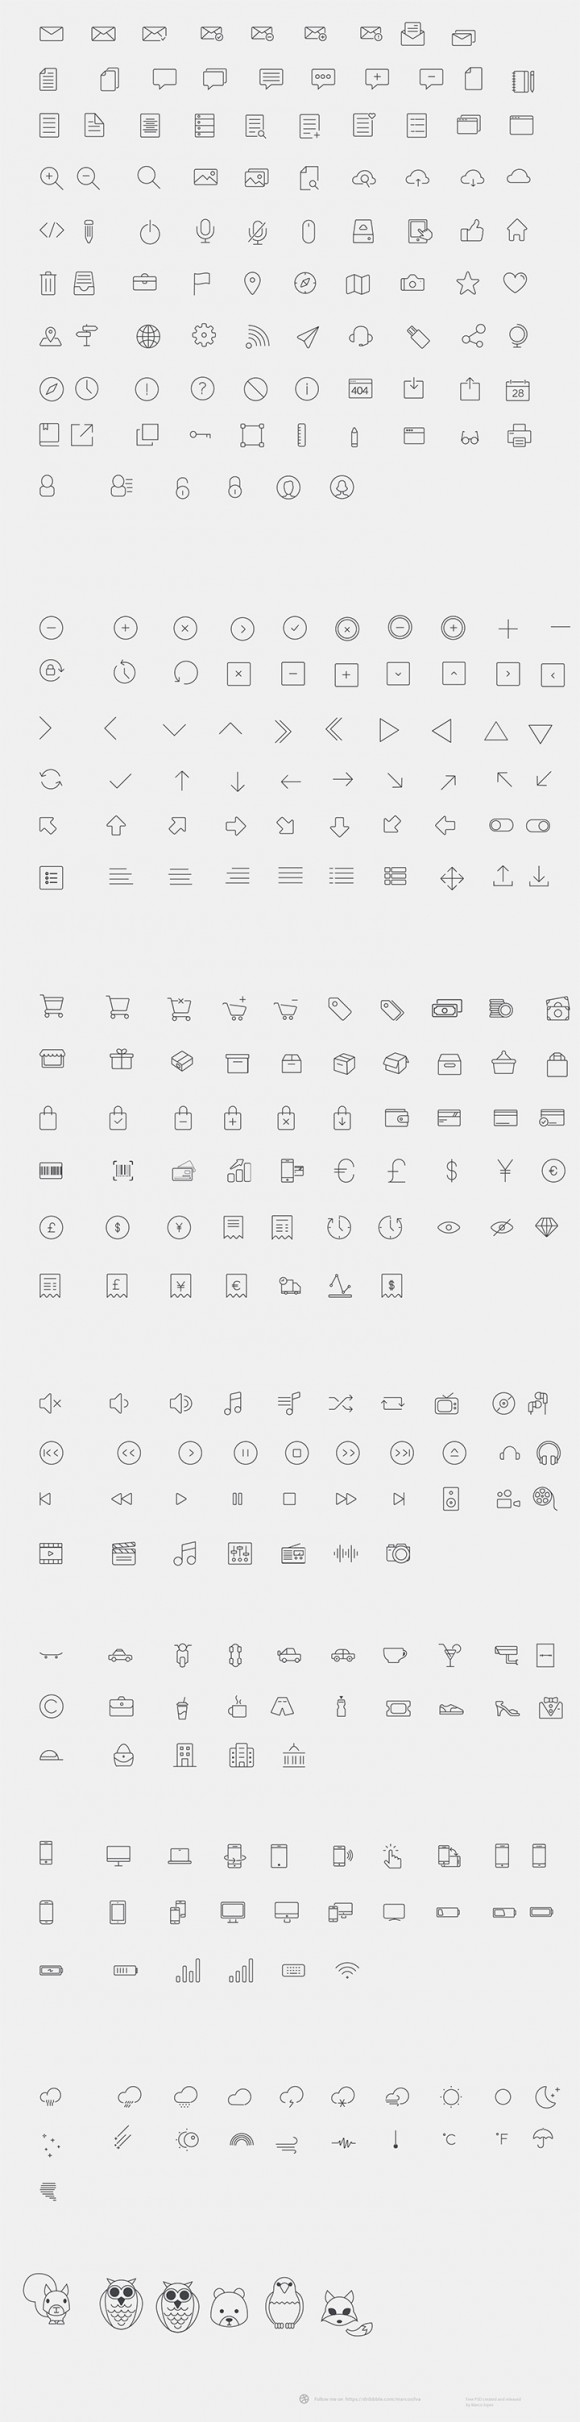 300+ line icons - Detailed image